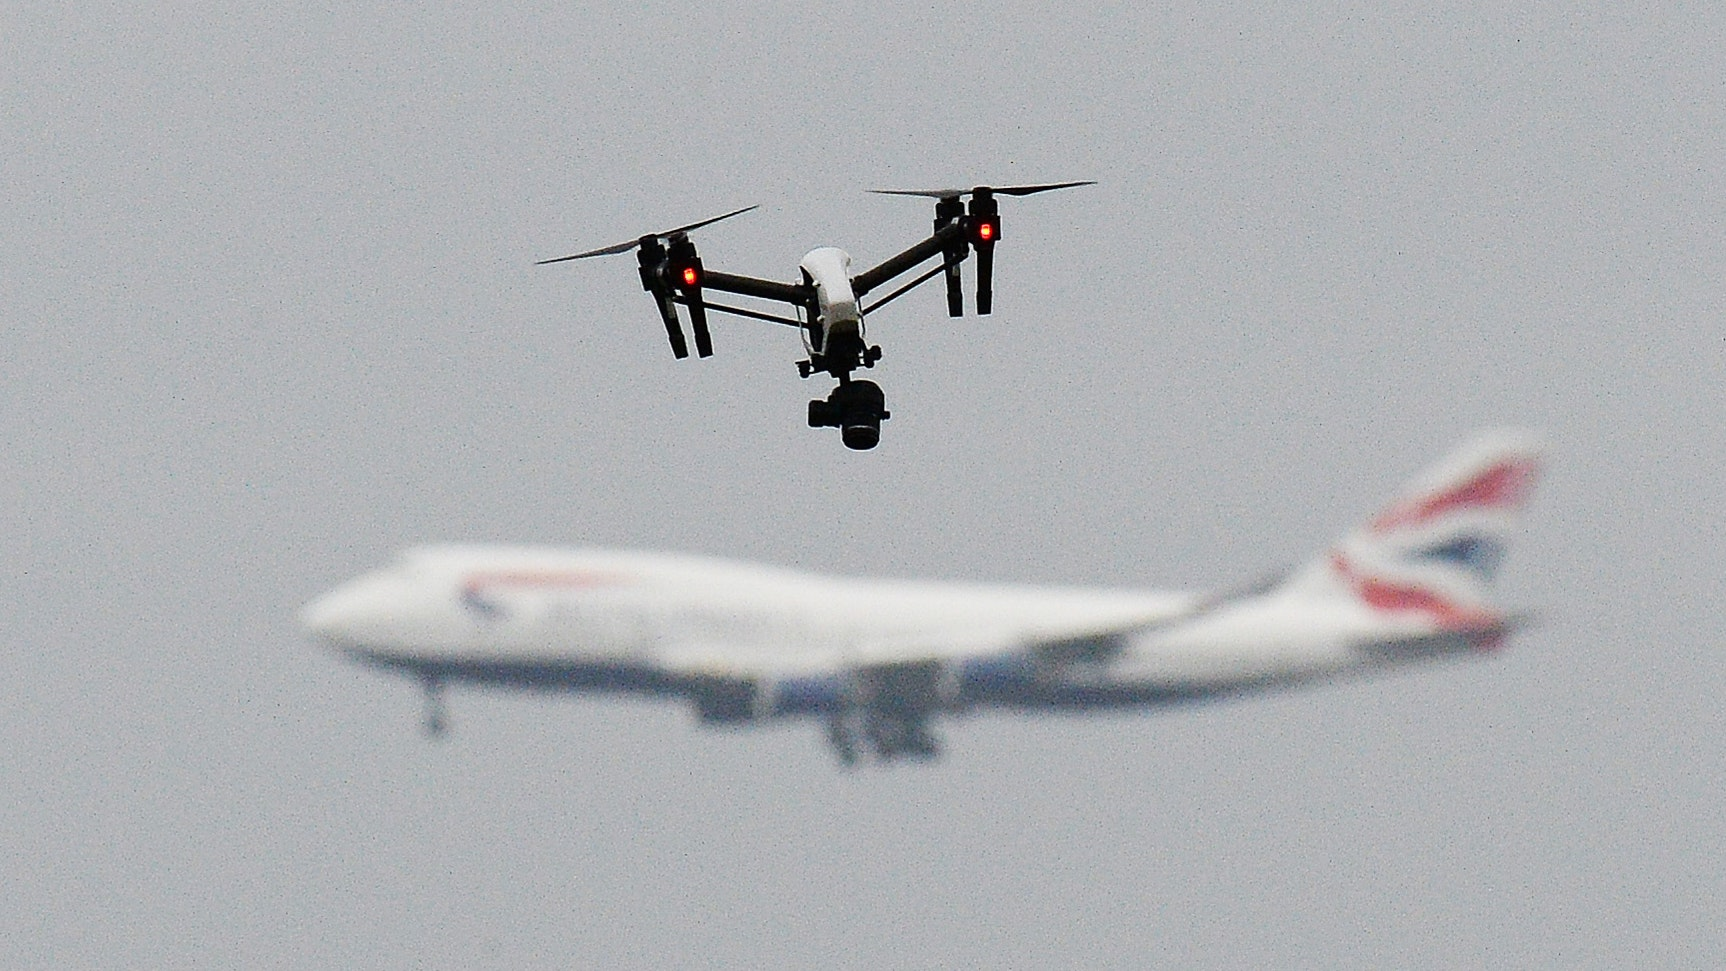 Heathrow may add 25,000 flights a year before third runway